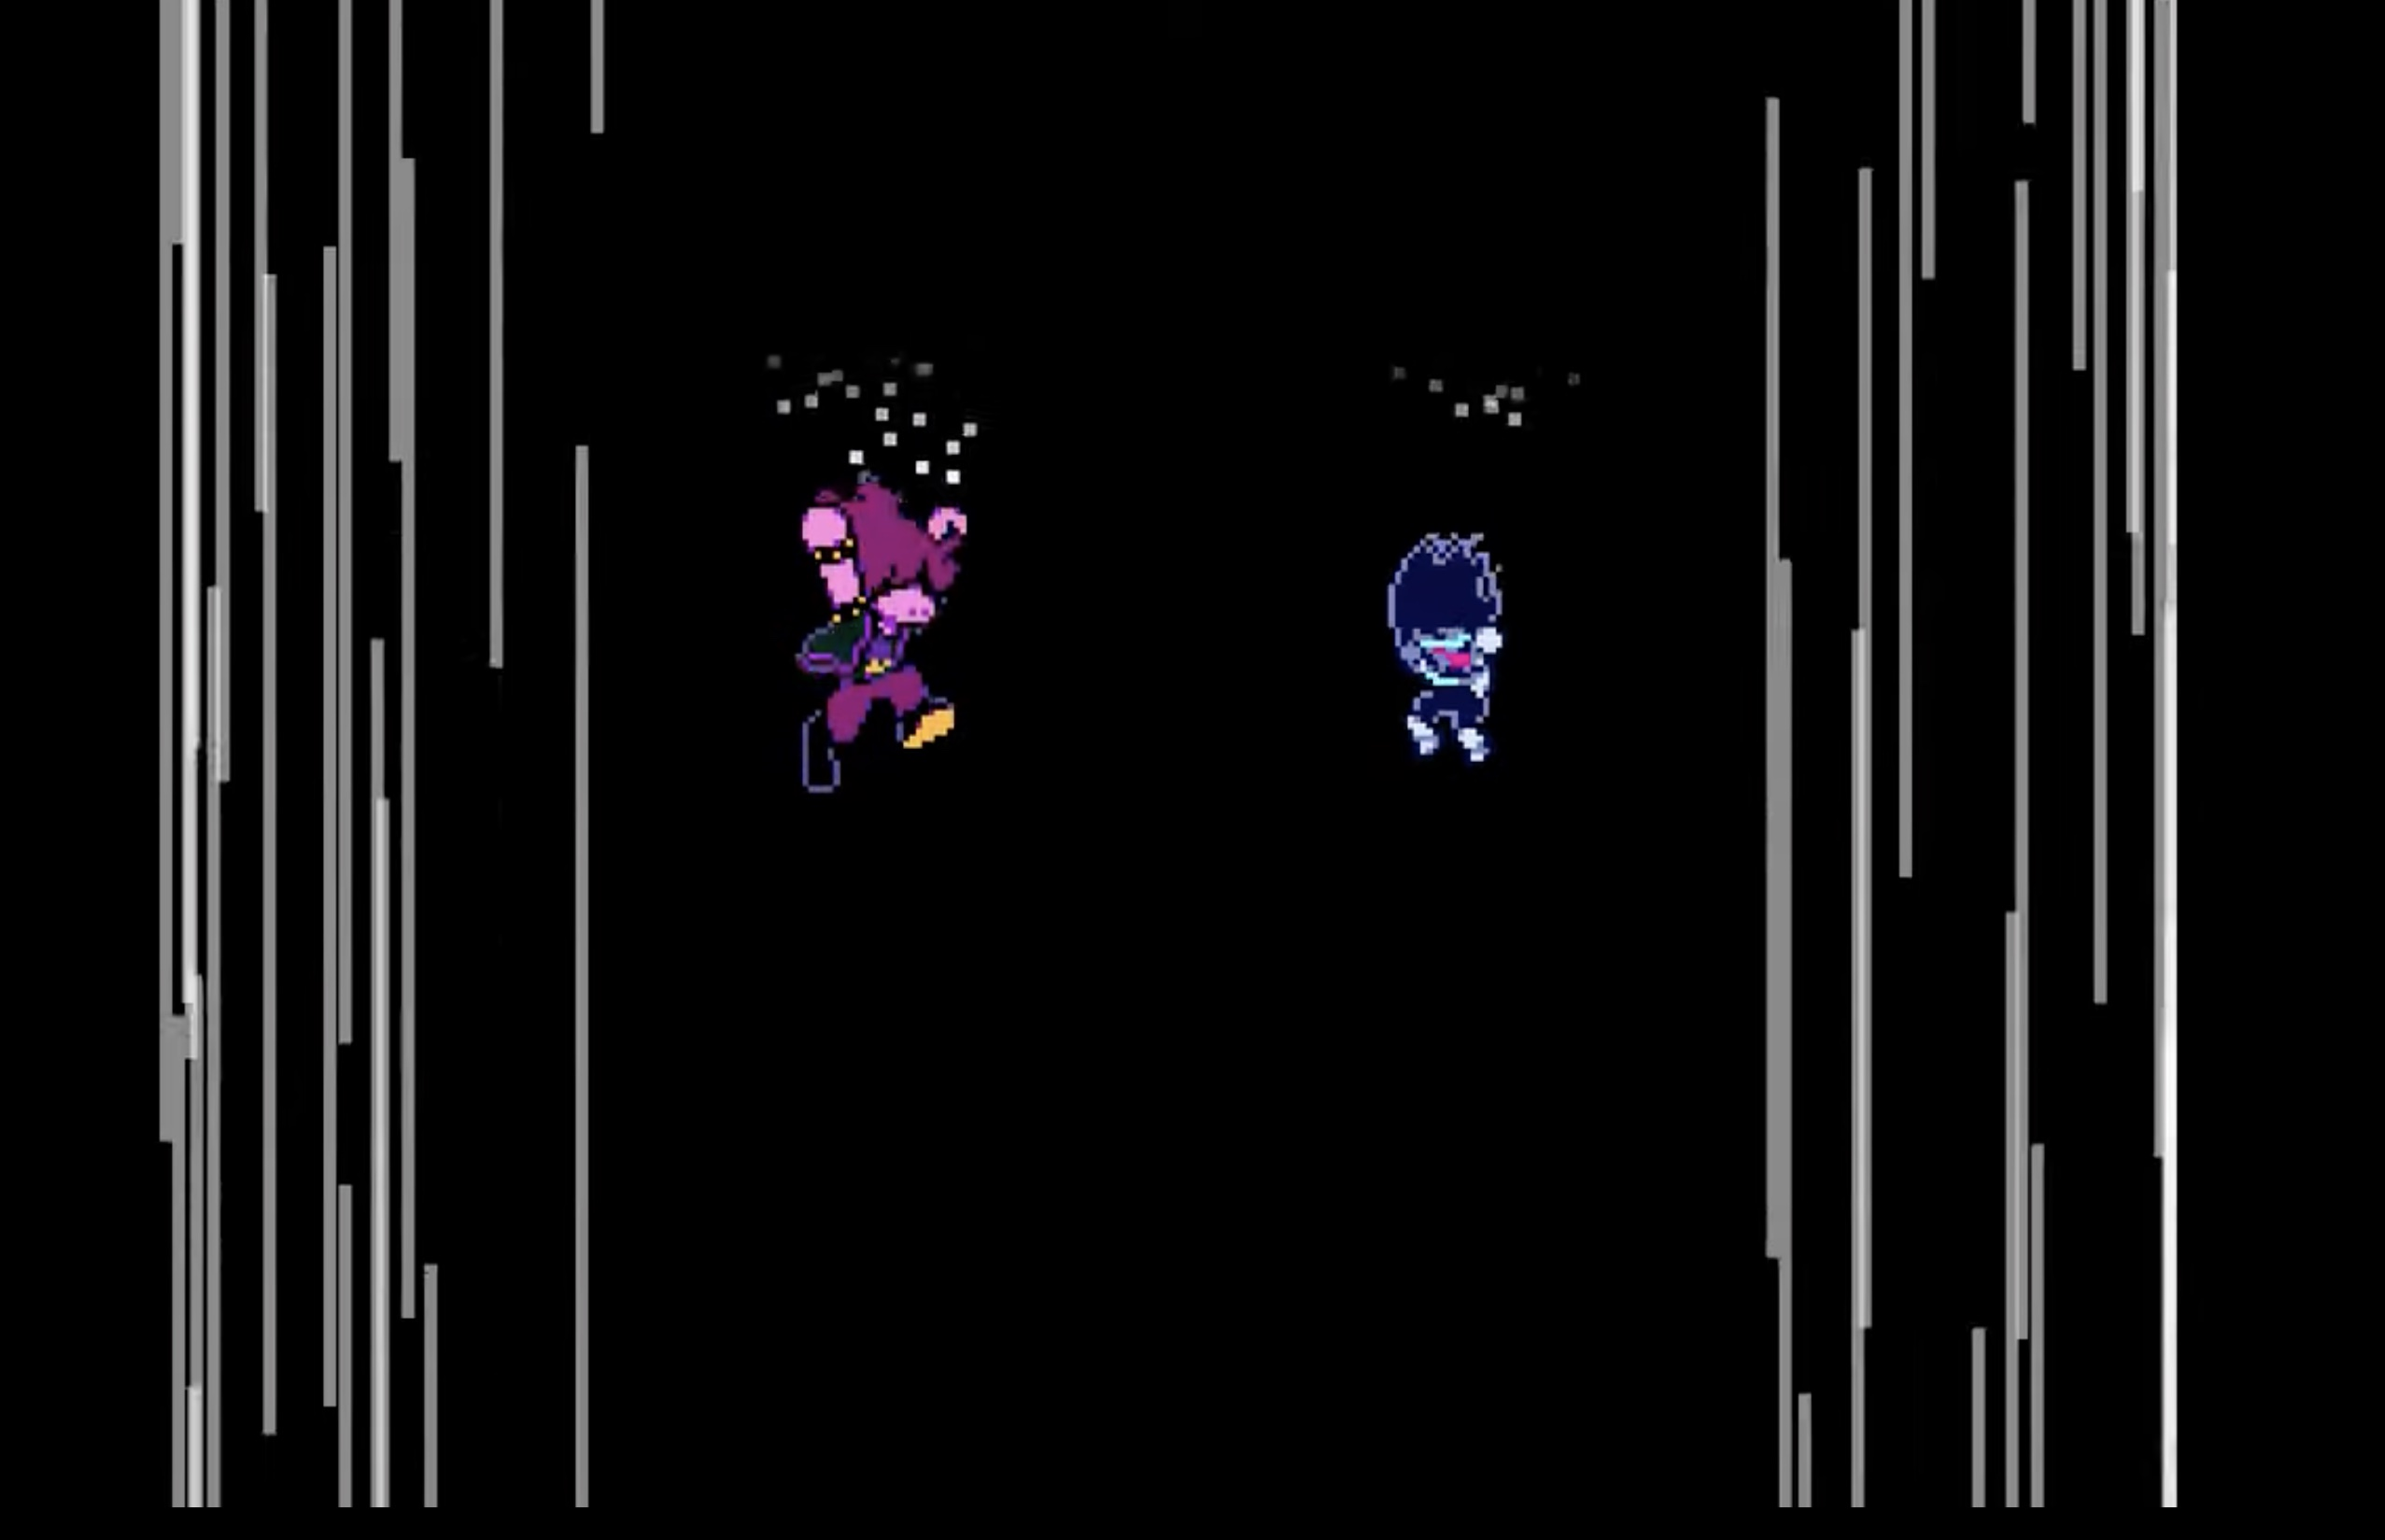 Deltarune Chapter 2 gets surprise release in two days